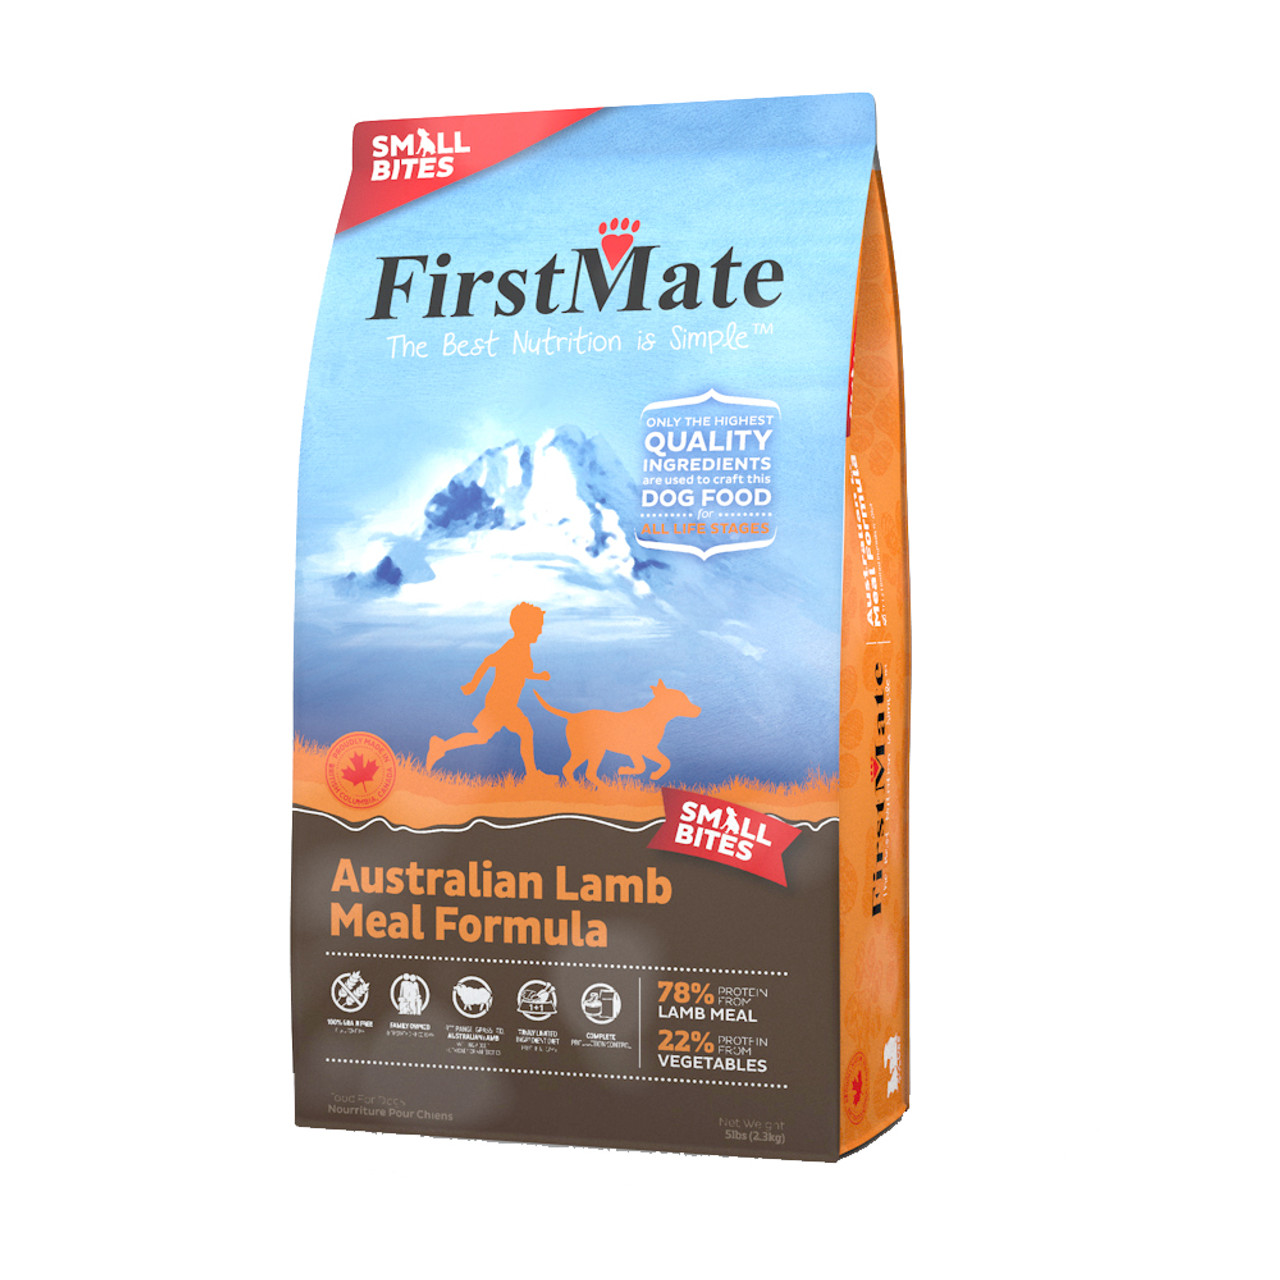 FirstMate Australian Lamb Meal Formula Small Bites Dry Dog Food